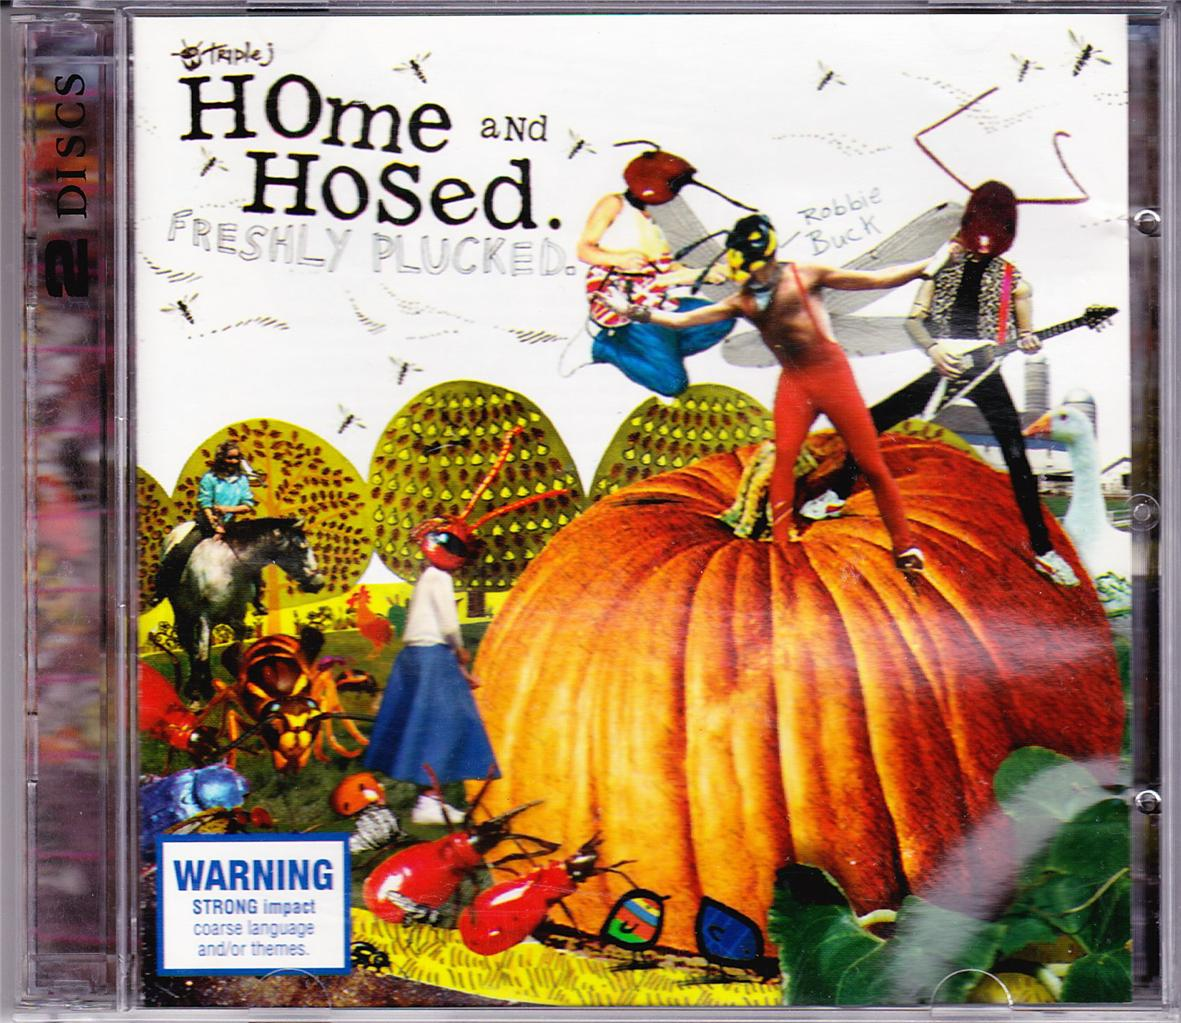 TRIPLE-J-OZ-DBL-CD-04-HOME-AND-HOSED-FRESHLY-PLUCKED-LOOP